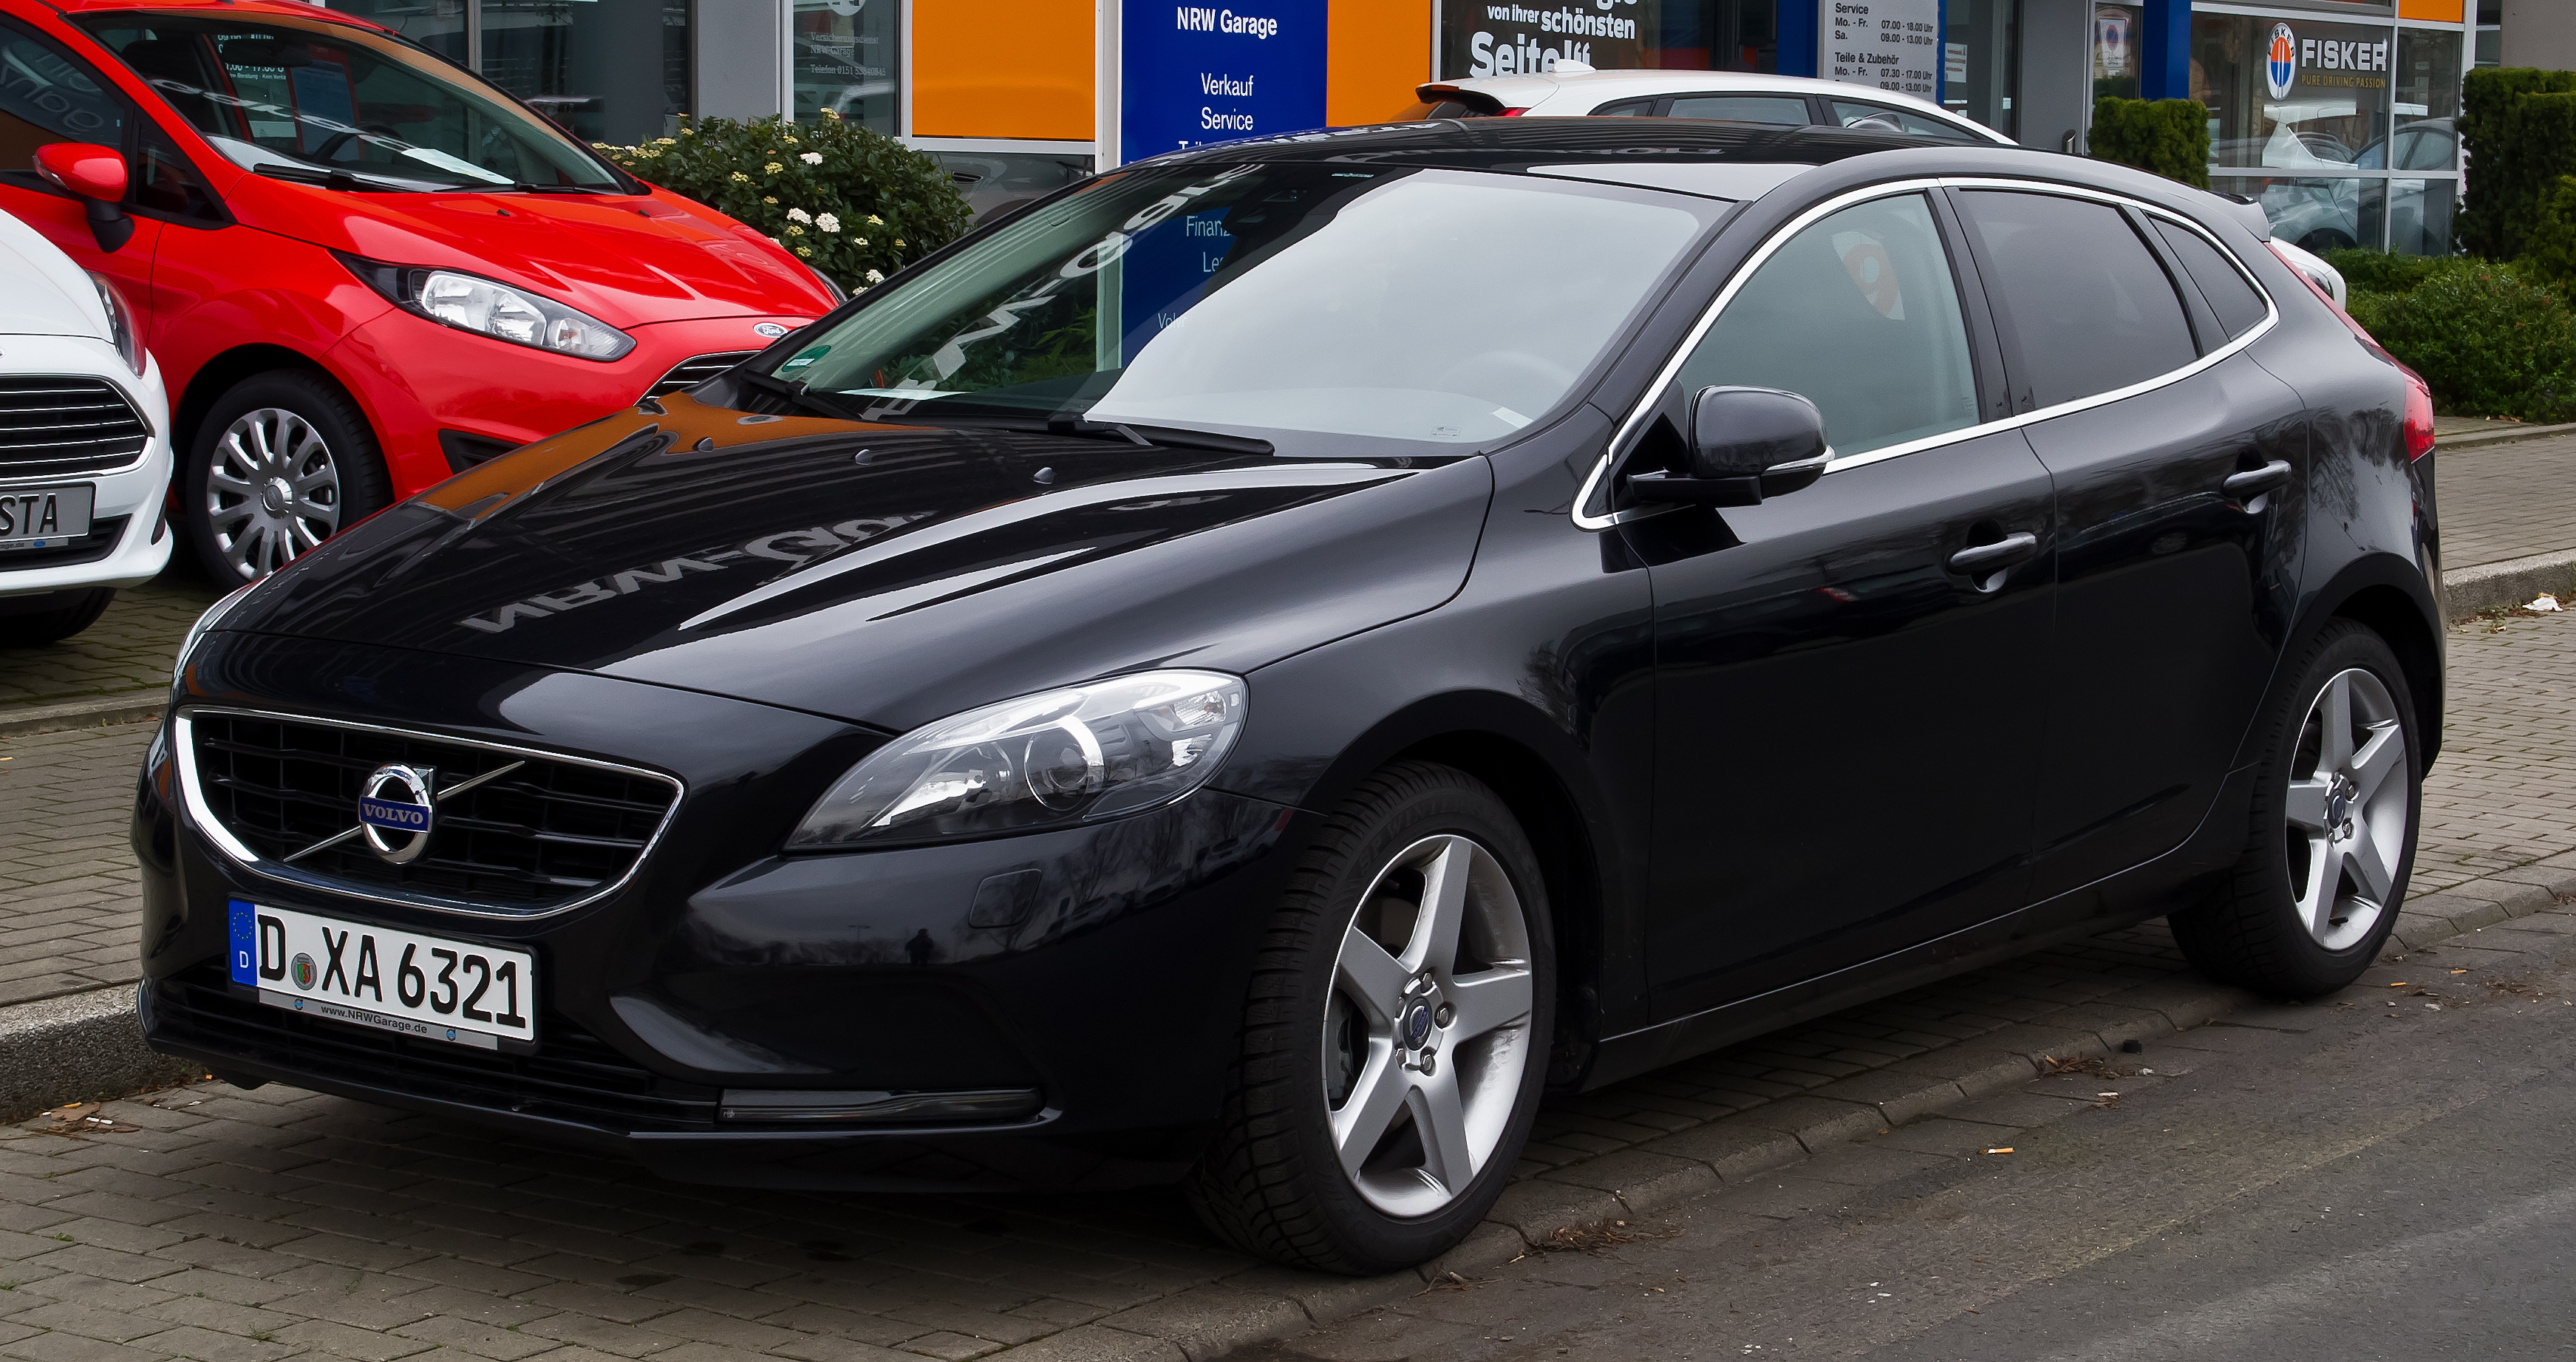 file volvo v40 summum ii frontansicht 3 m rz 2014 d wikimedia commons. Black Bedroom Furniture Sets. Home Design Ideas